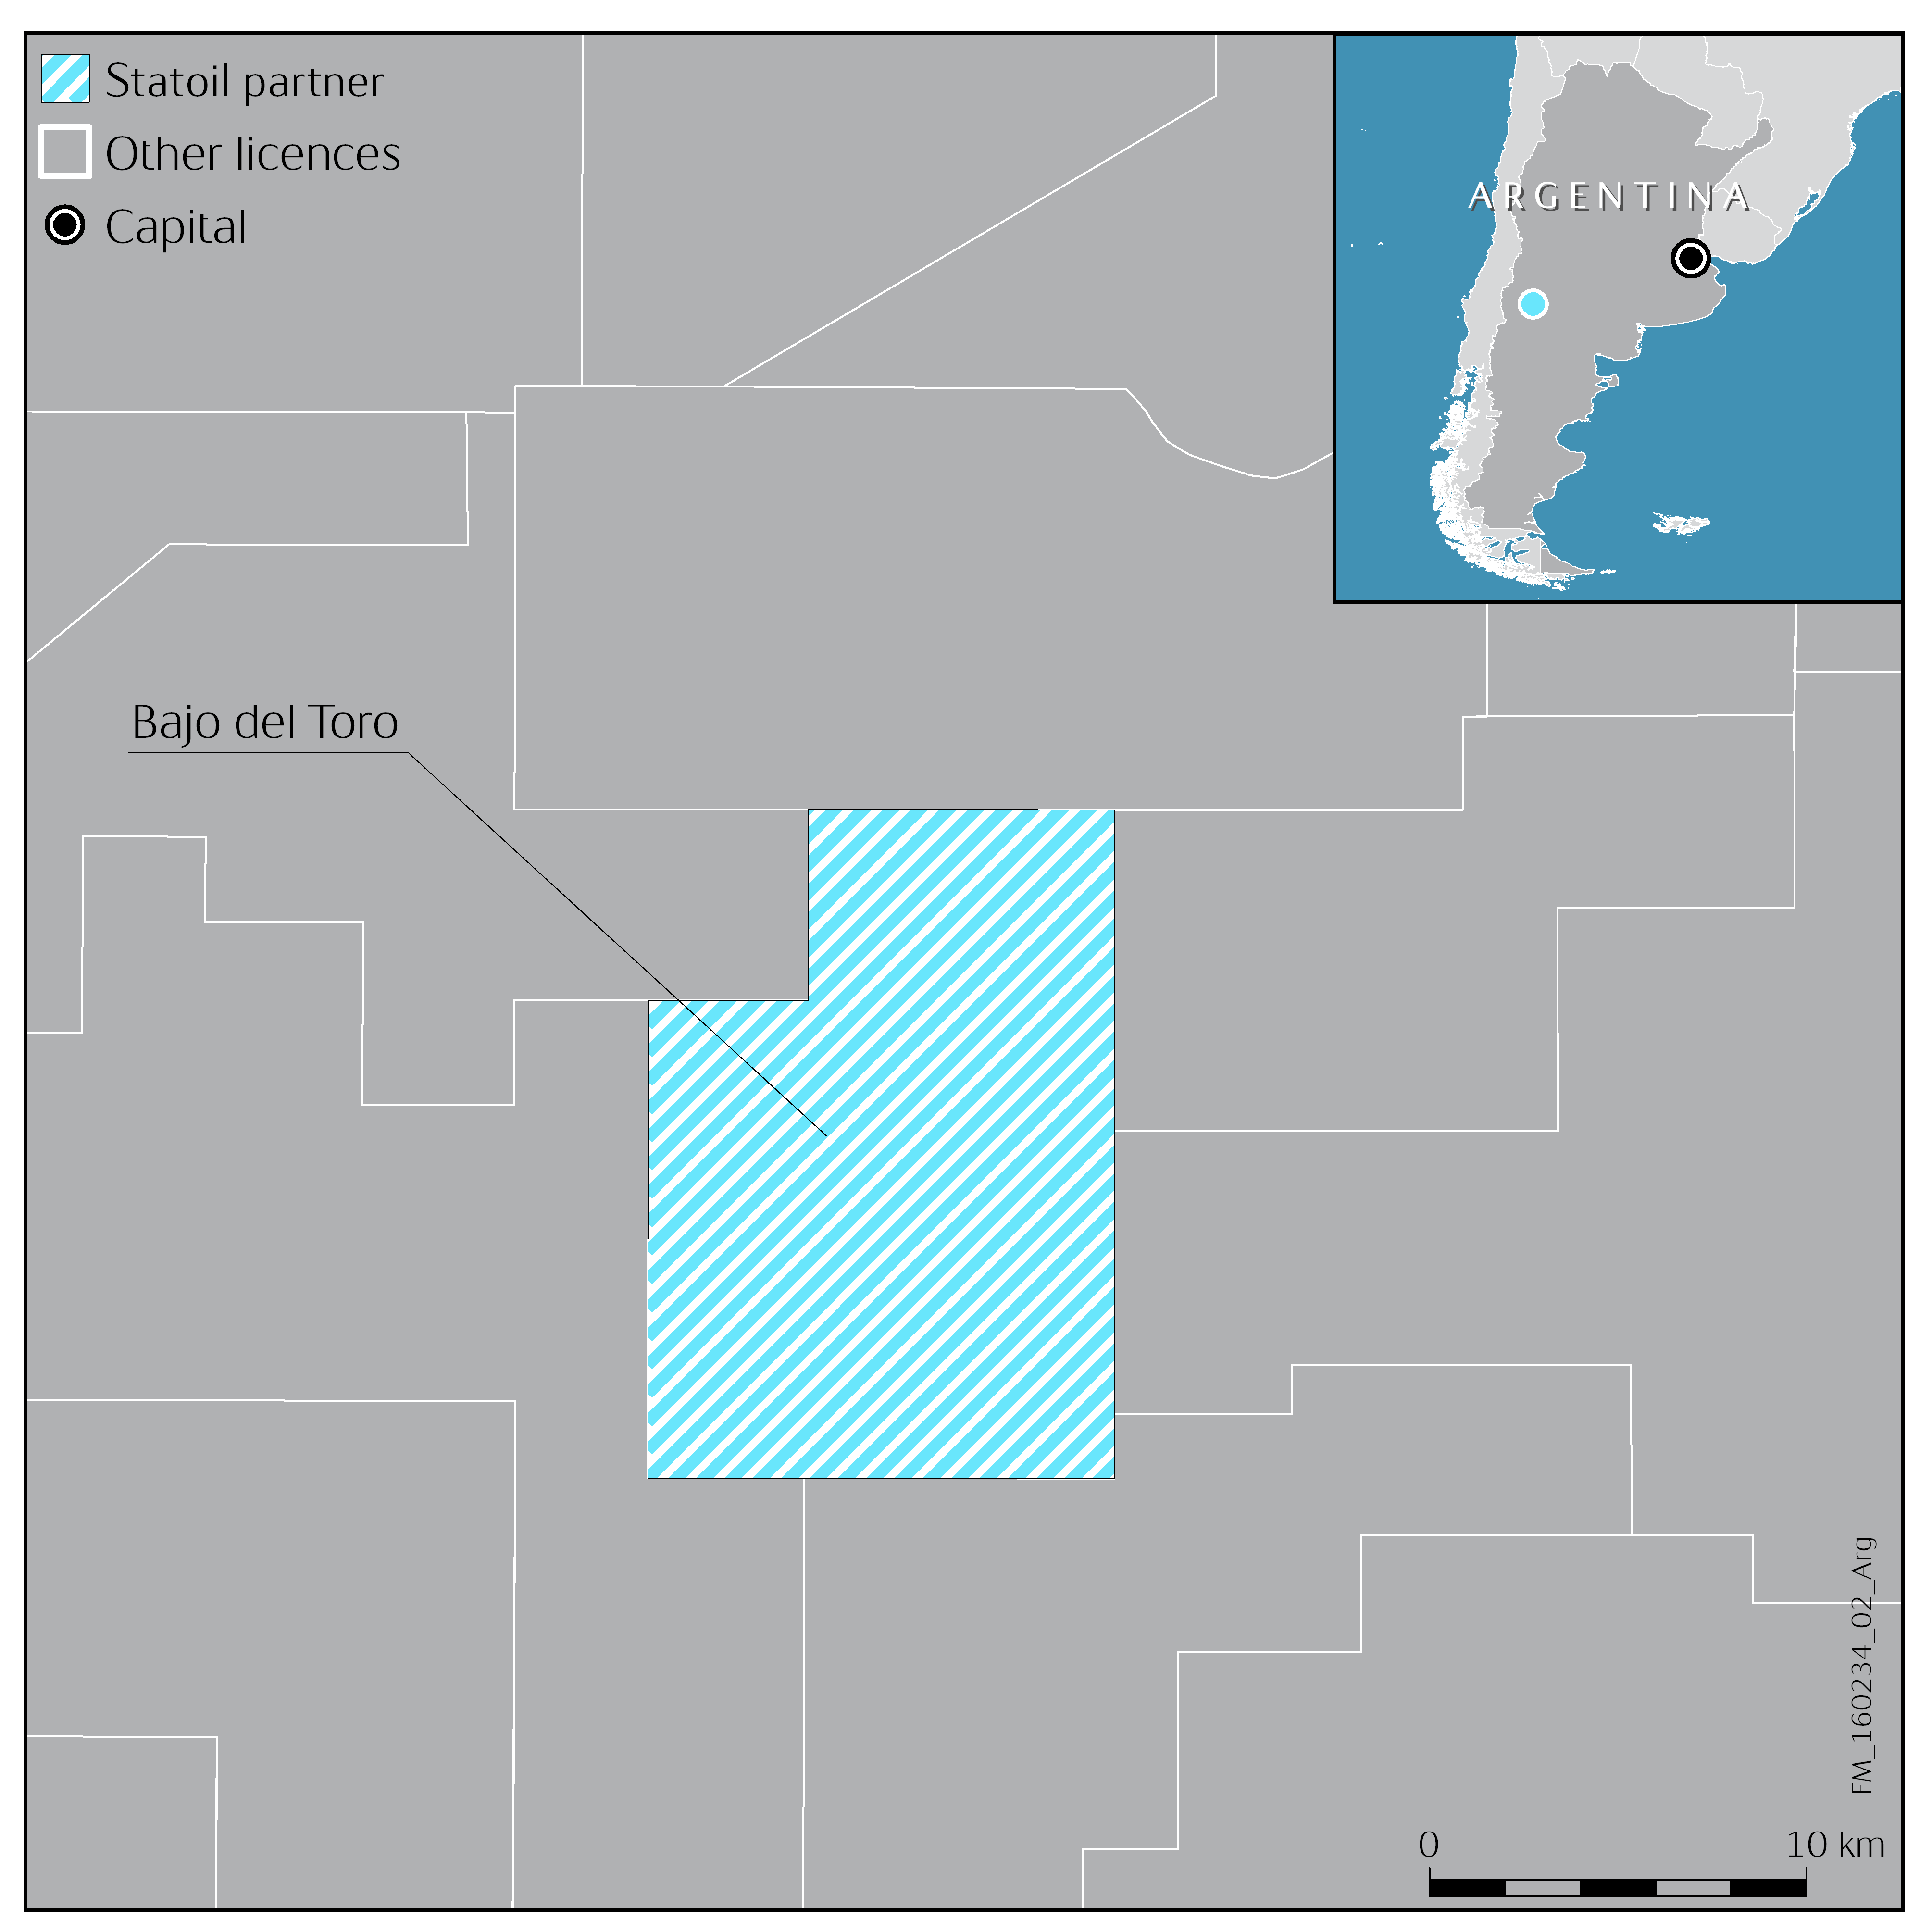 Statoil And YPF Sign An Onshore Exploration Agreement For Vaca - Argentina map png